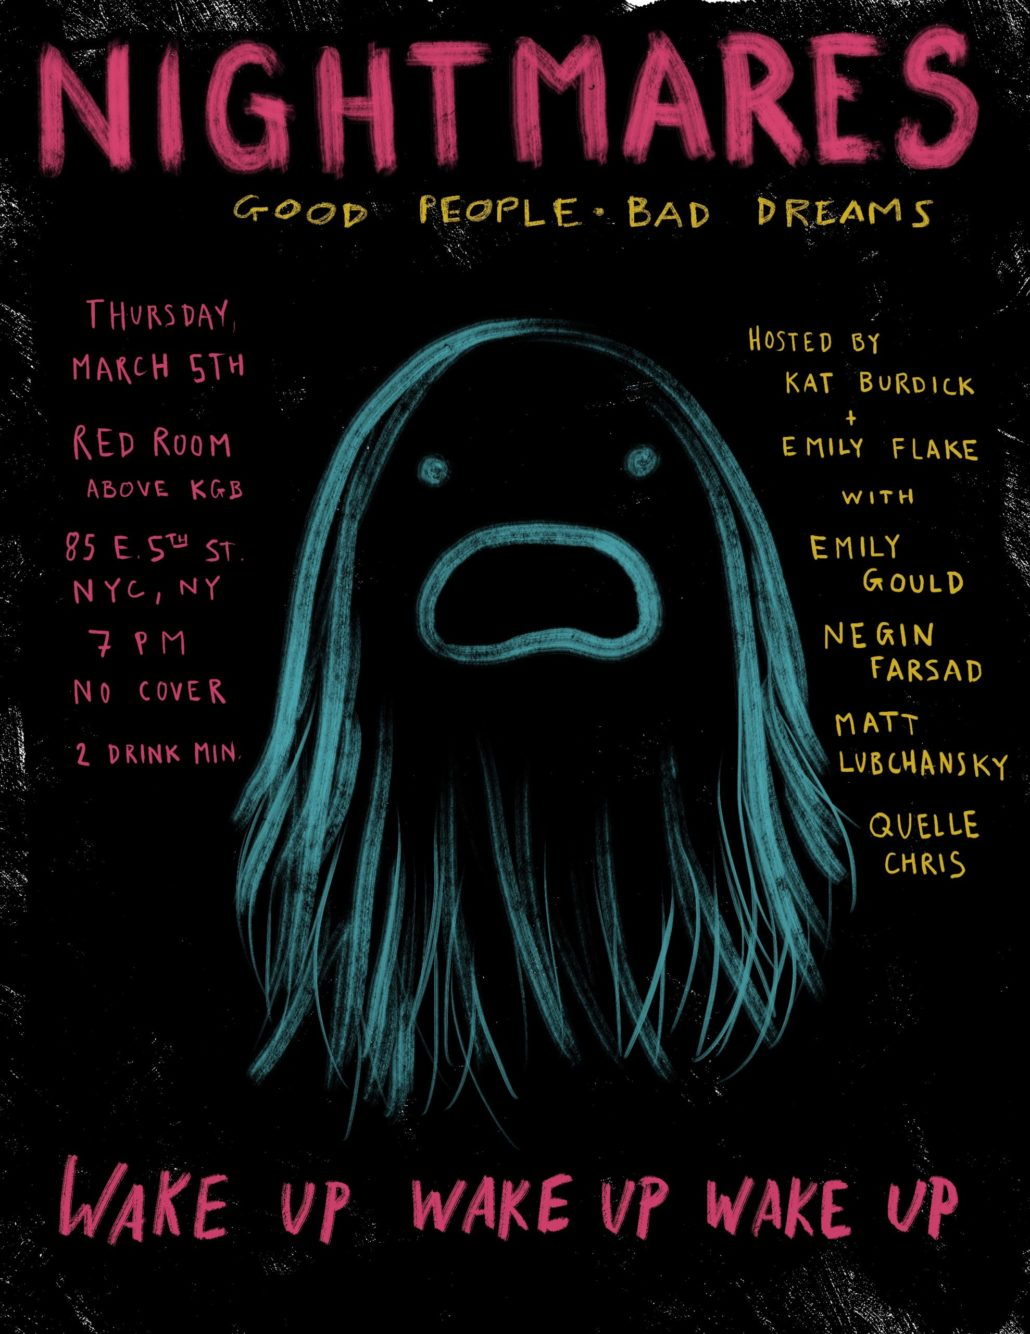 Next live Nightmares show Thurs March 5, 2020 at KGB